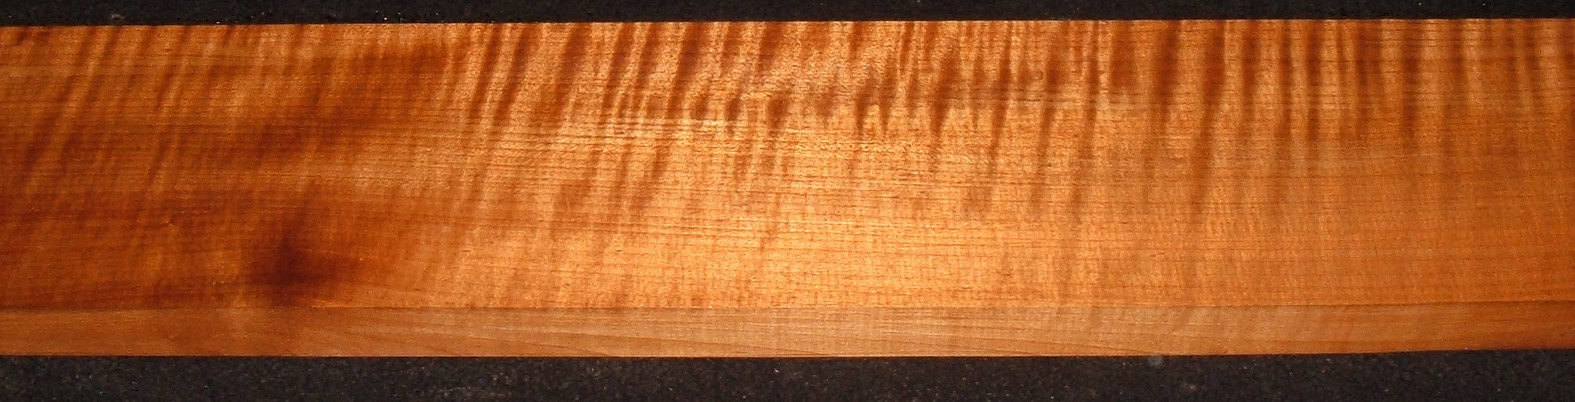 QRM2010-344JK, 1-1/8x4-3/4x47, Quartersawn Roasted Curly Maple